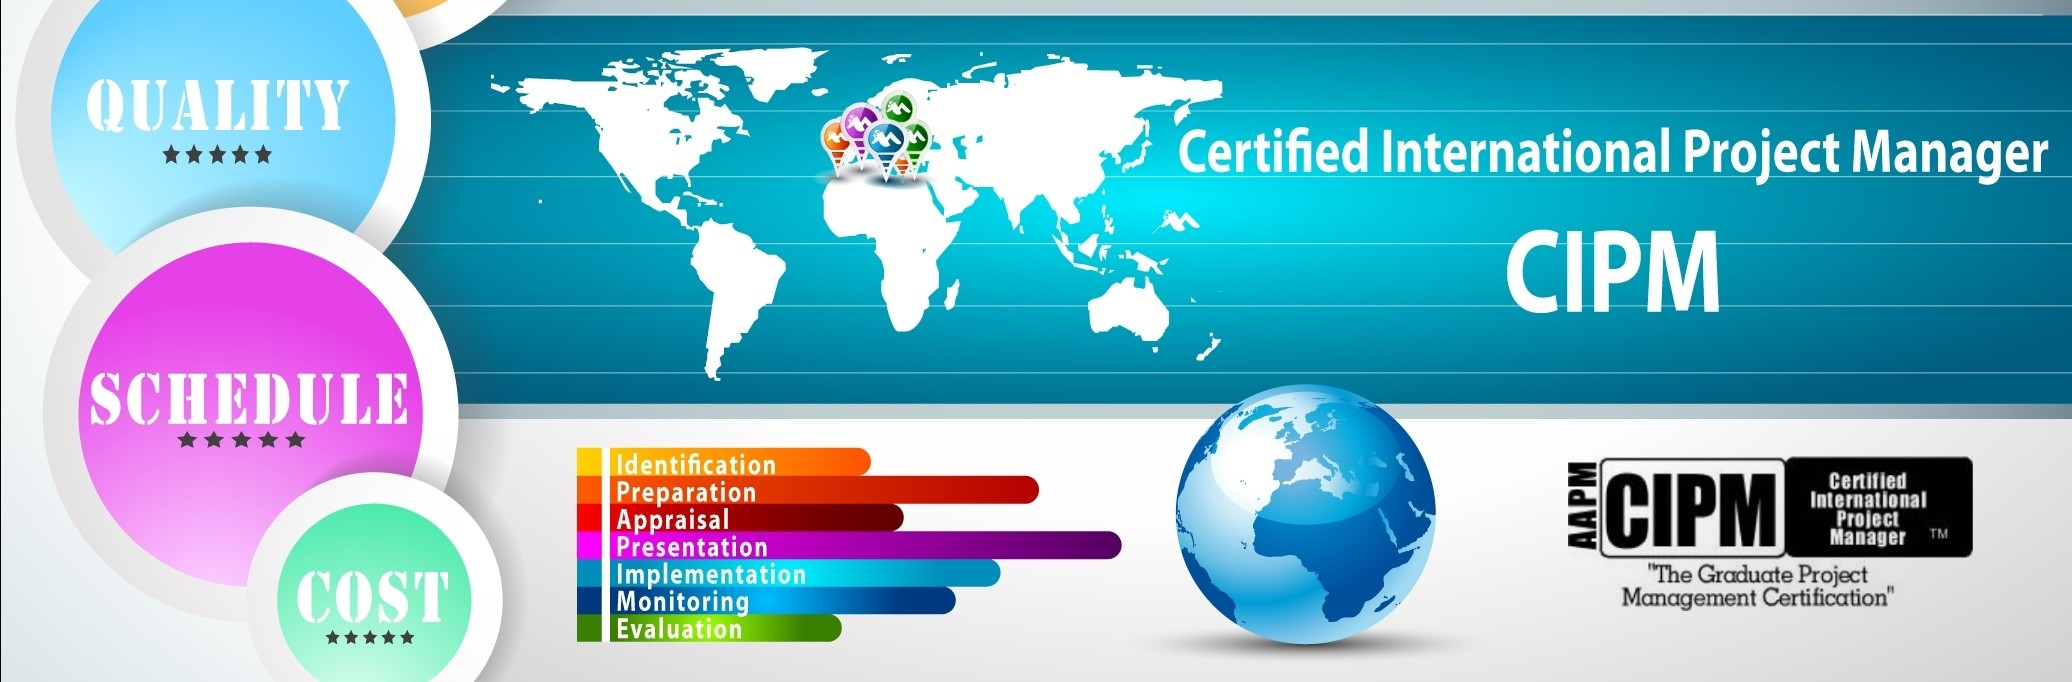 09 Certified International Project Manager Cipm